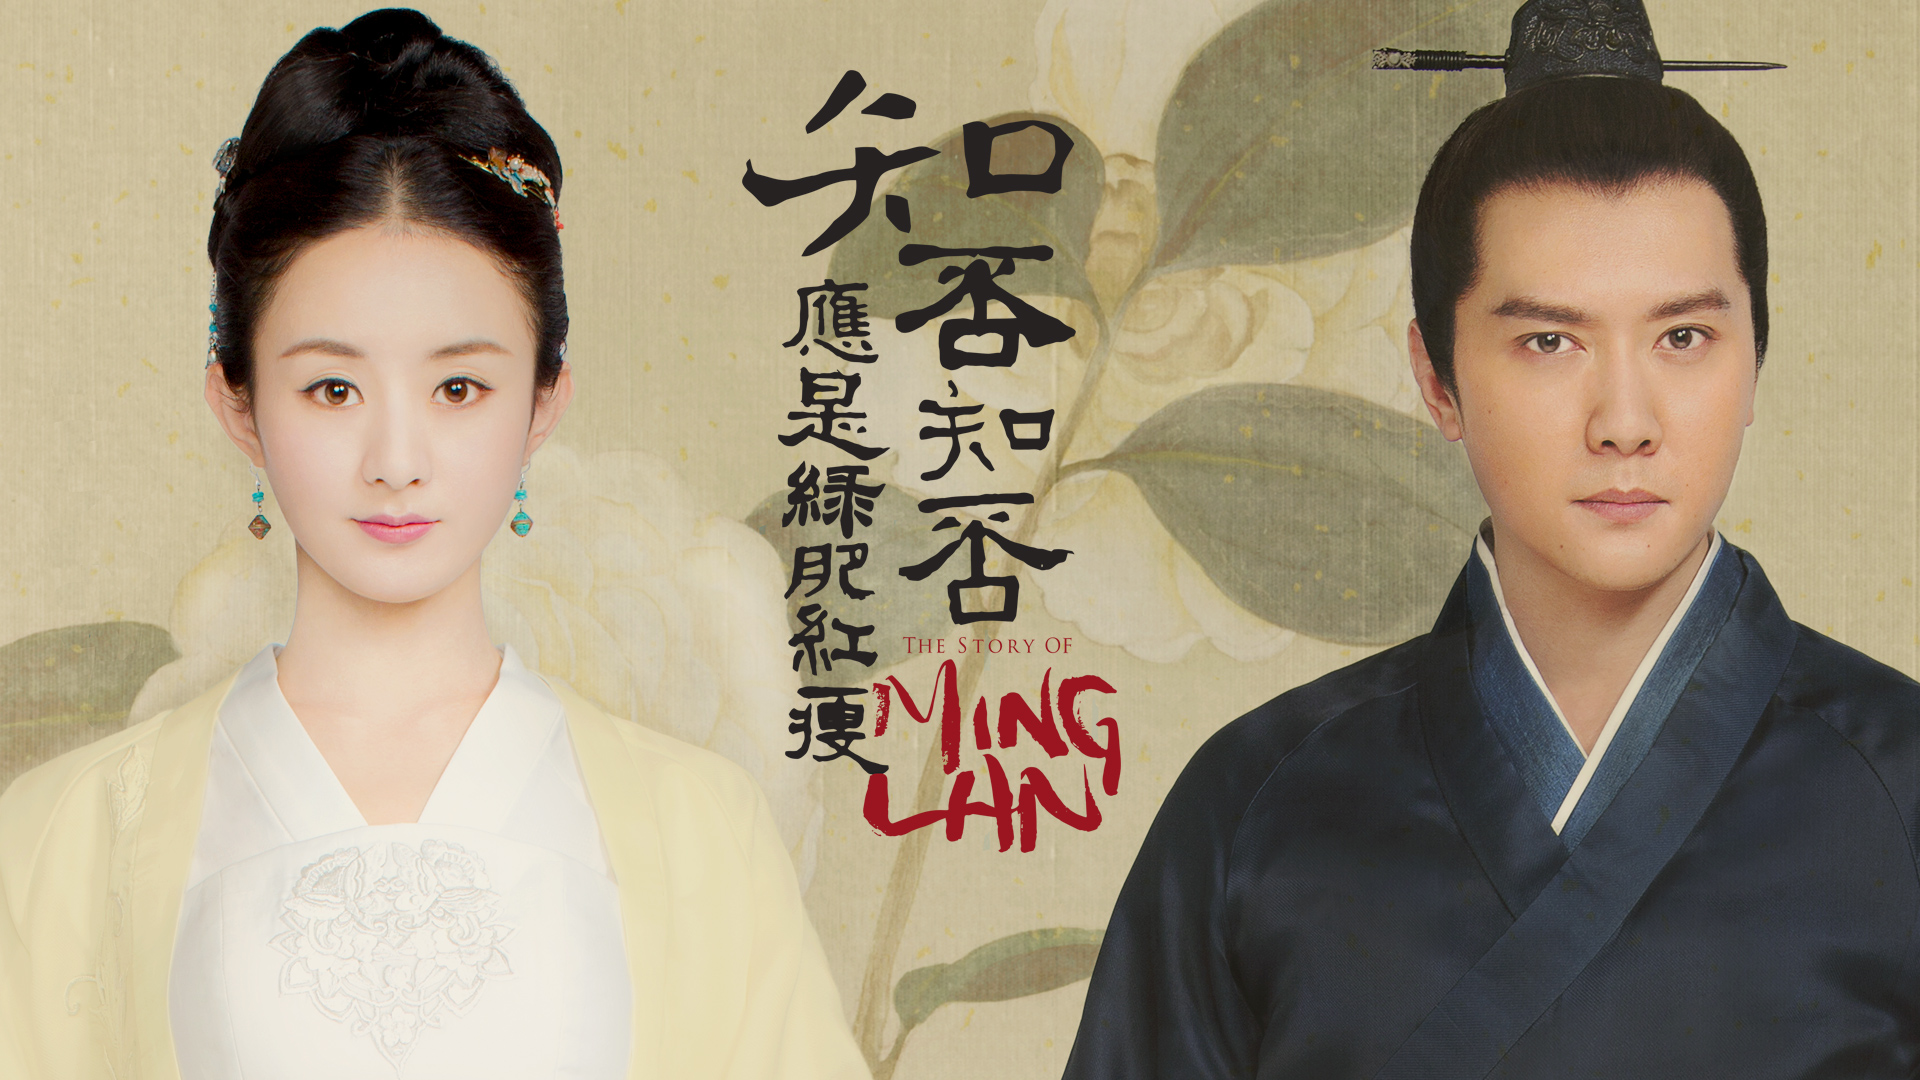 THE STORY OF MING LAN